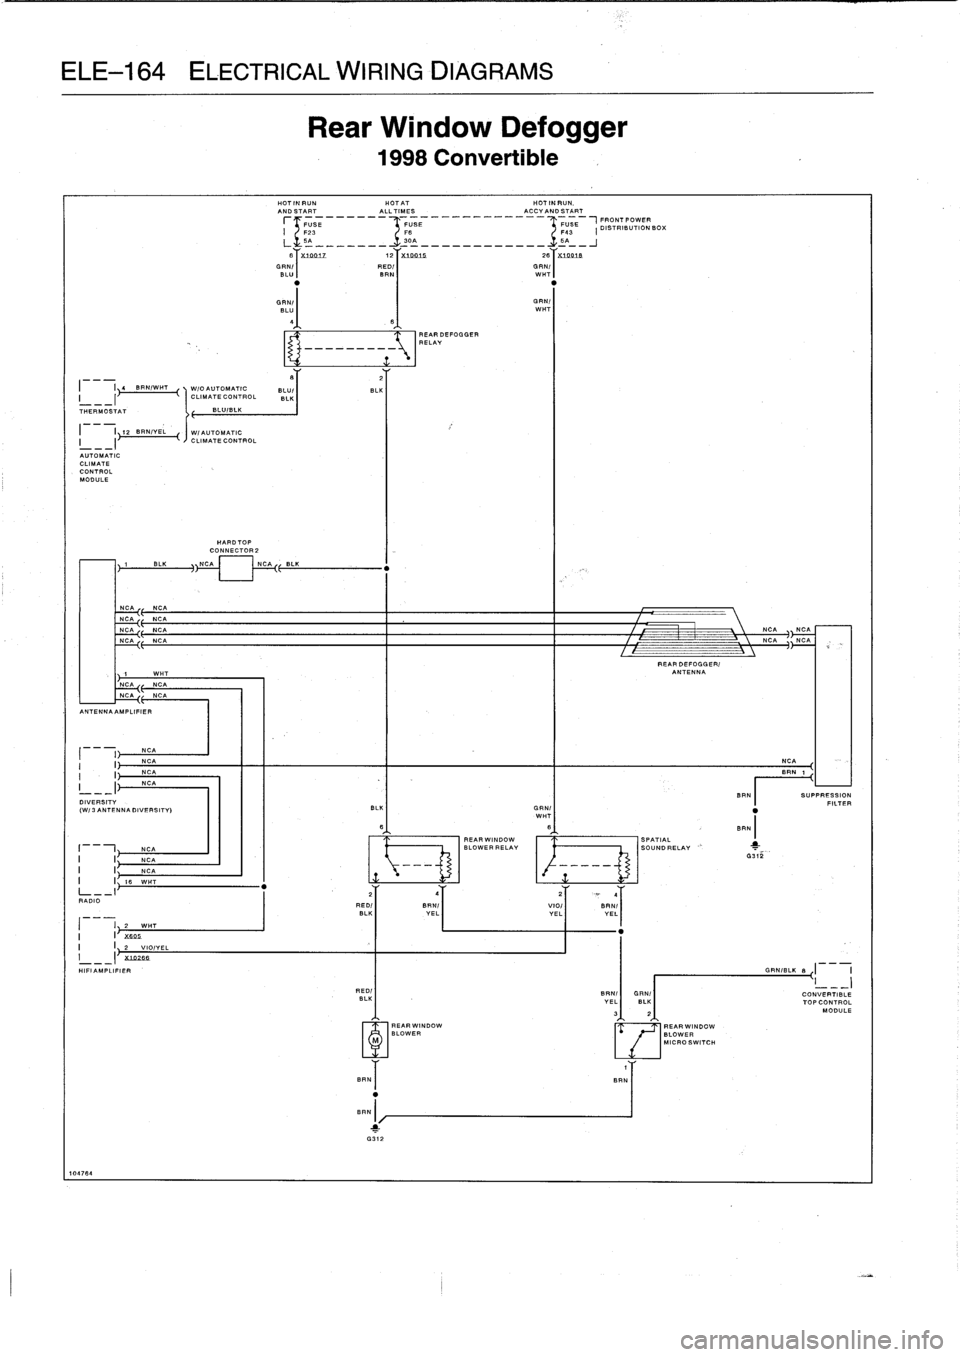 w960_2800 646 bmw m3 1992 e36 workshop manual BMW Stereo Wiring Diagram at readyjetset.co